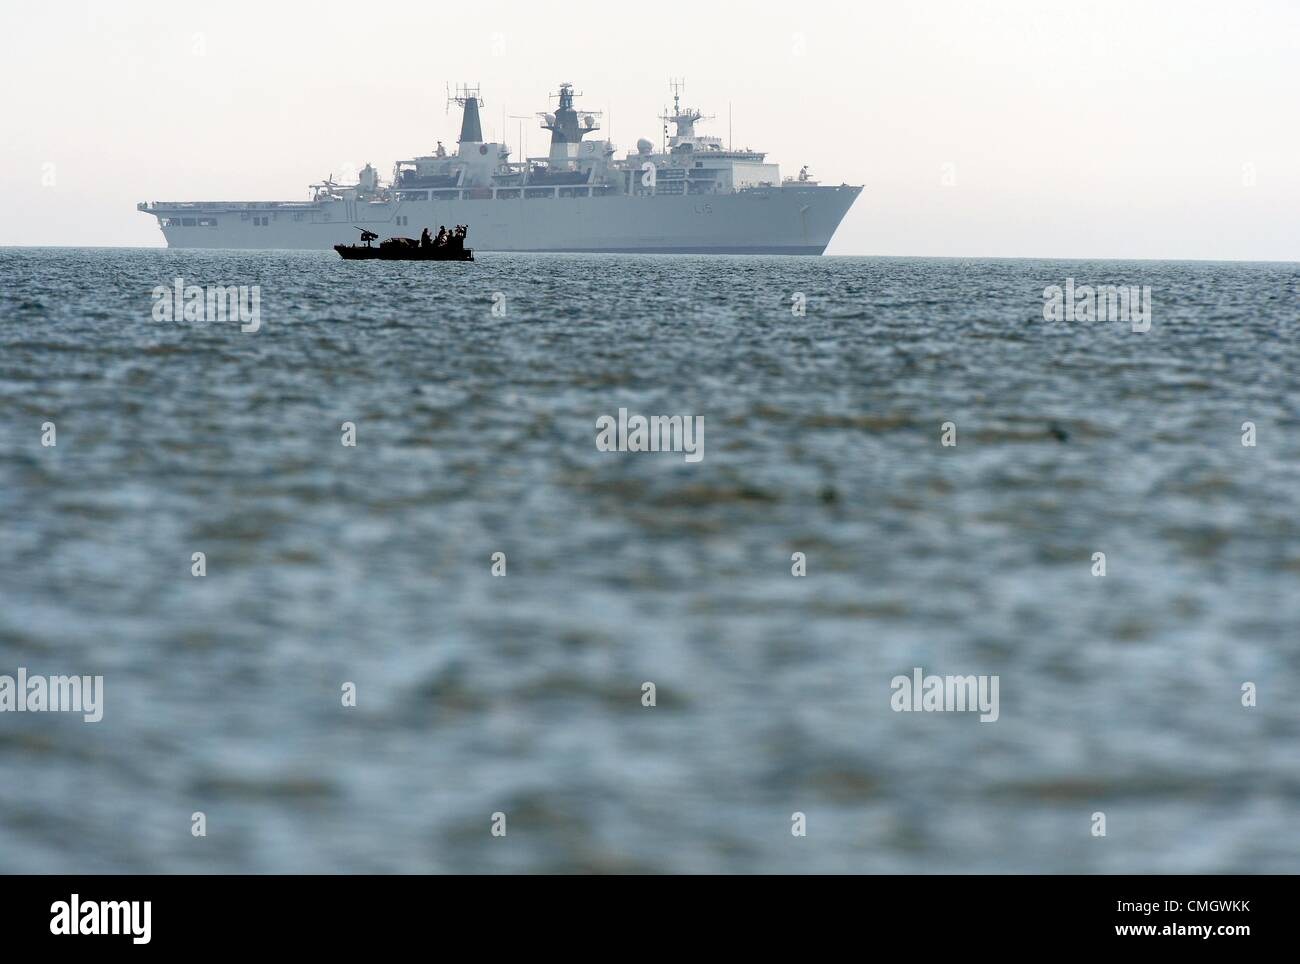 HMS Bulwark and security boat at the 2012 Olympic Games sailing venue - Stock Image